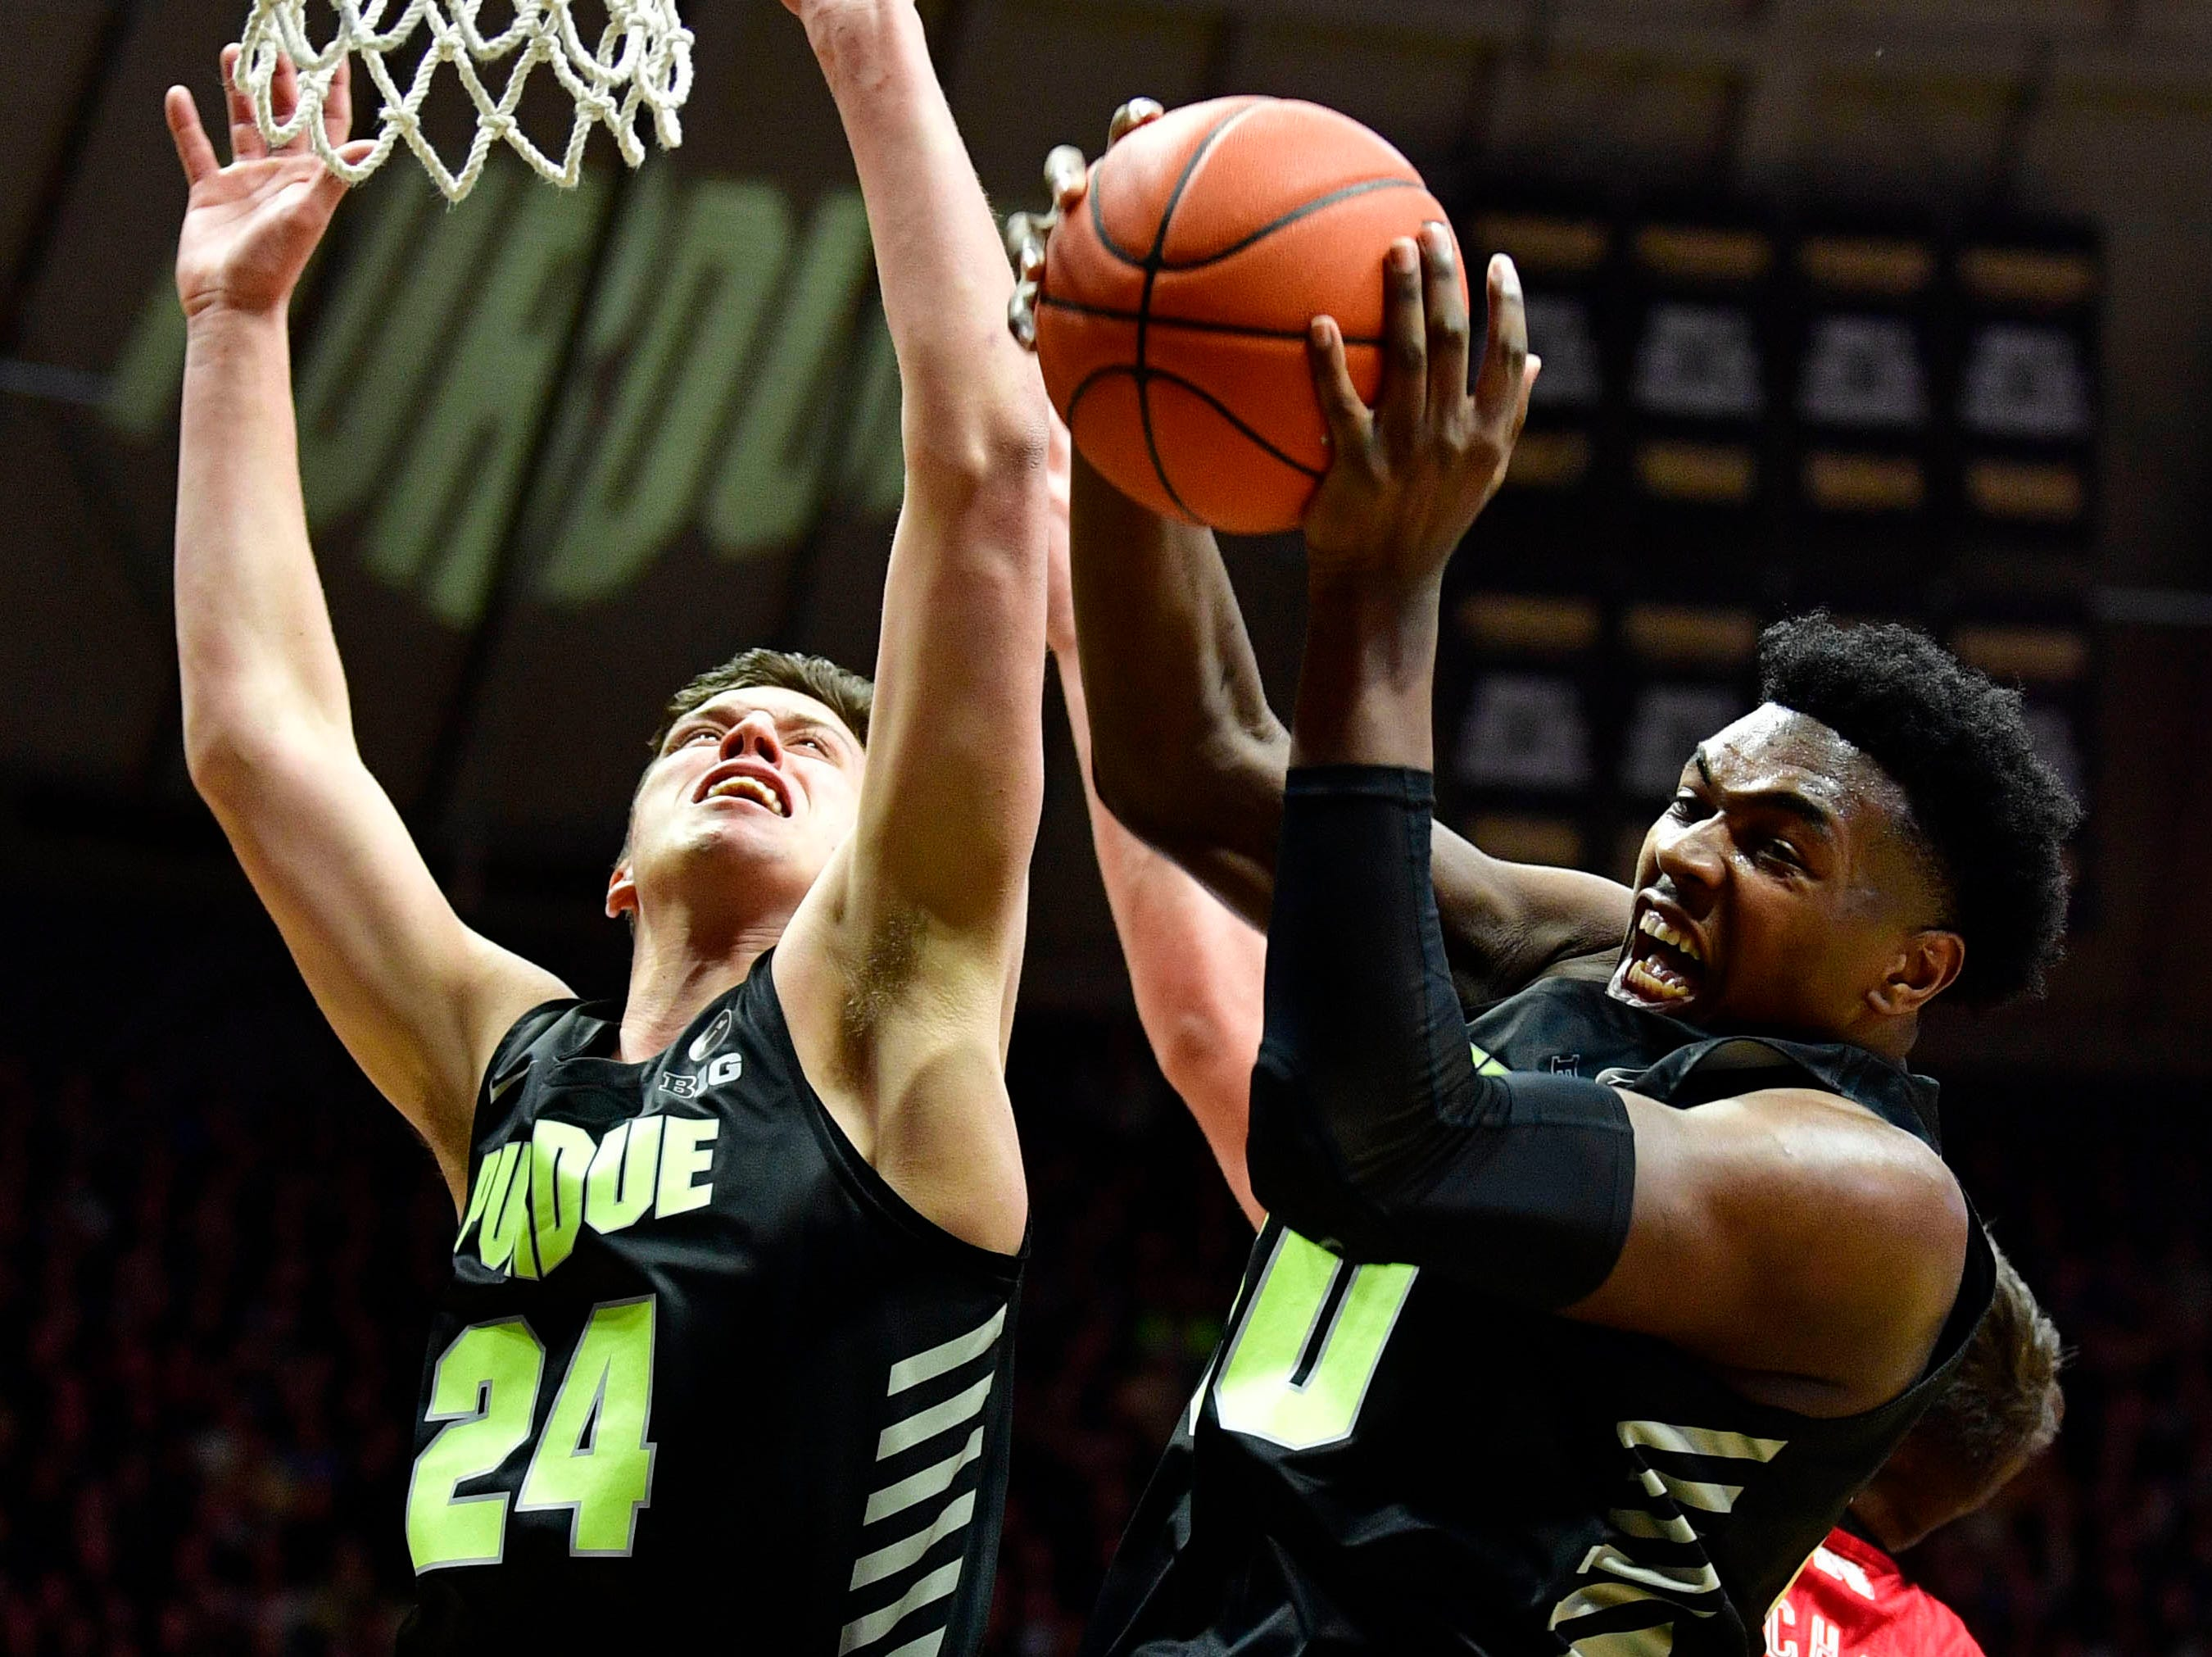 Purdue Boilermakers forward Trevion Williams (50) grabs a rebound after a shot by the Nebraska Cornhuskers during the first half.